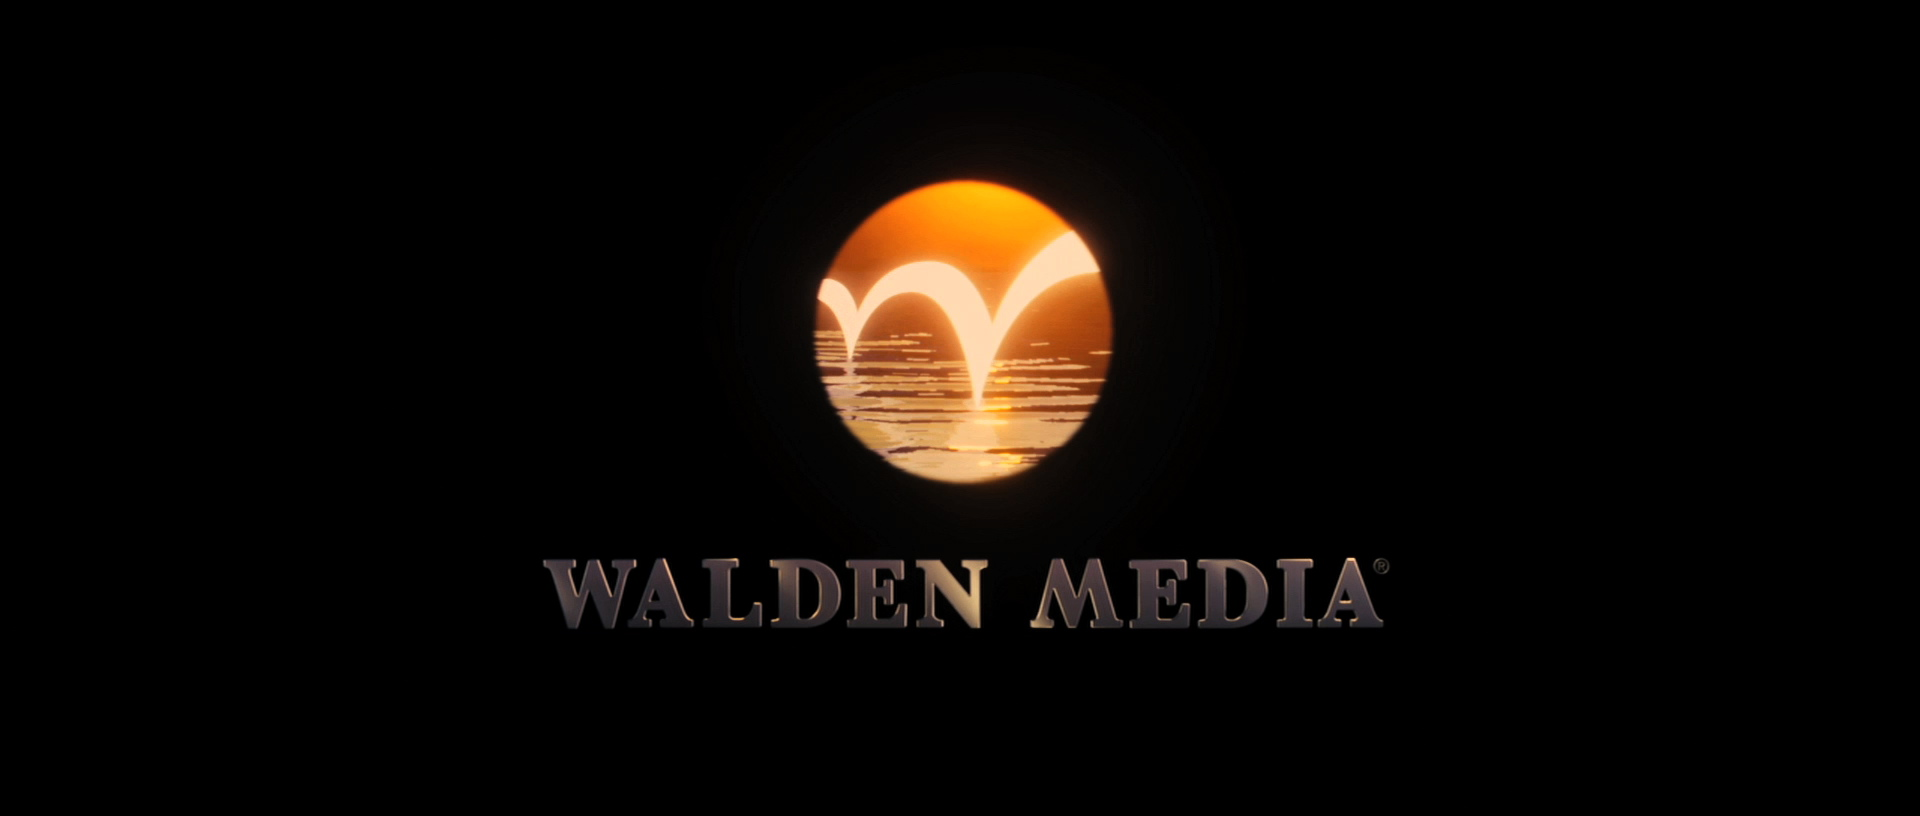 Walden Media Logo Narniaweb